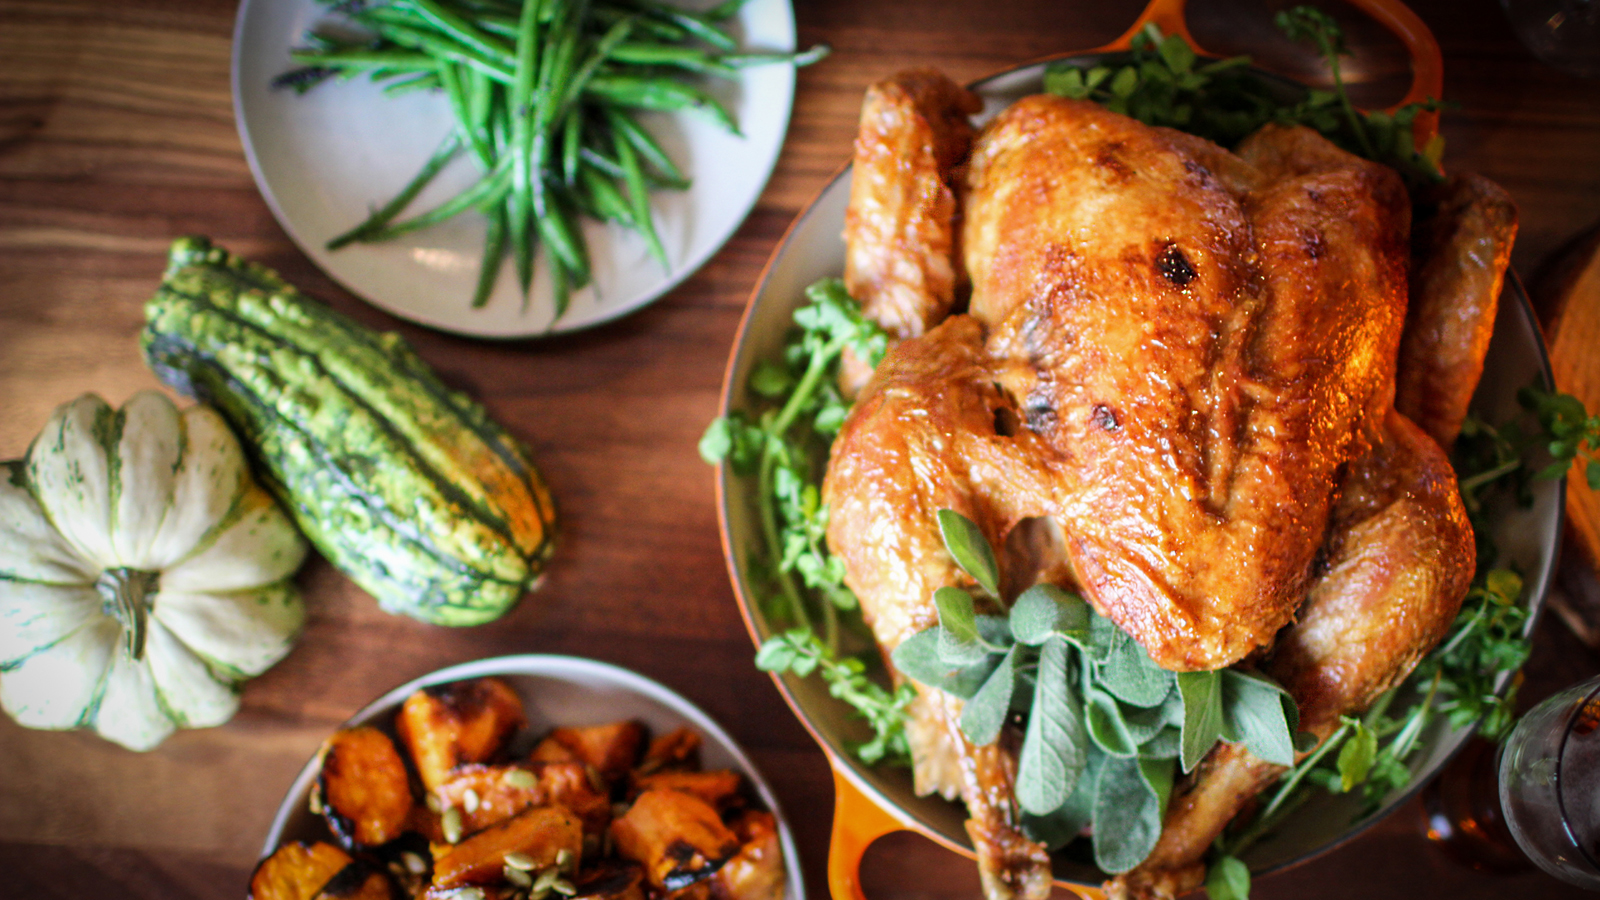 A roasted turkey with autumnal squash.